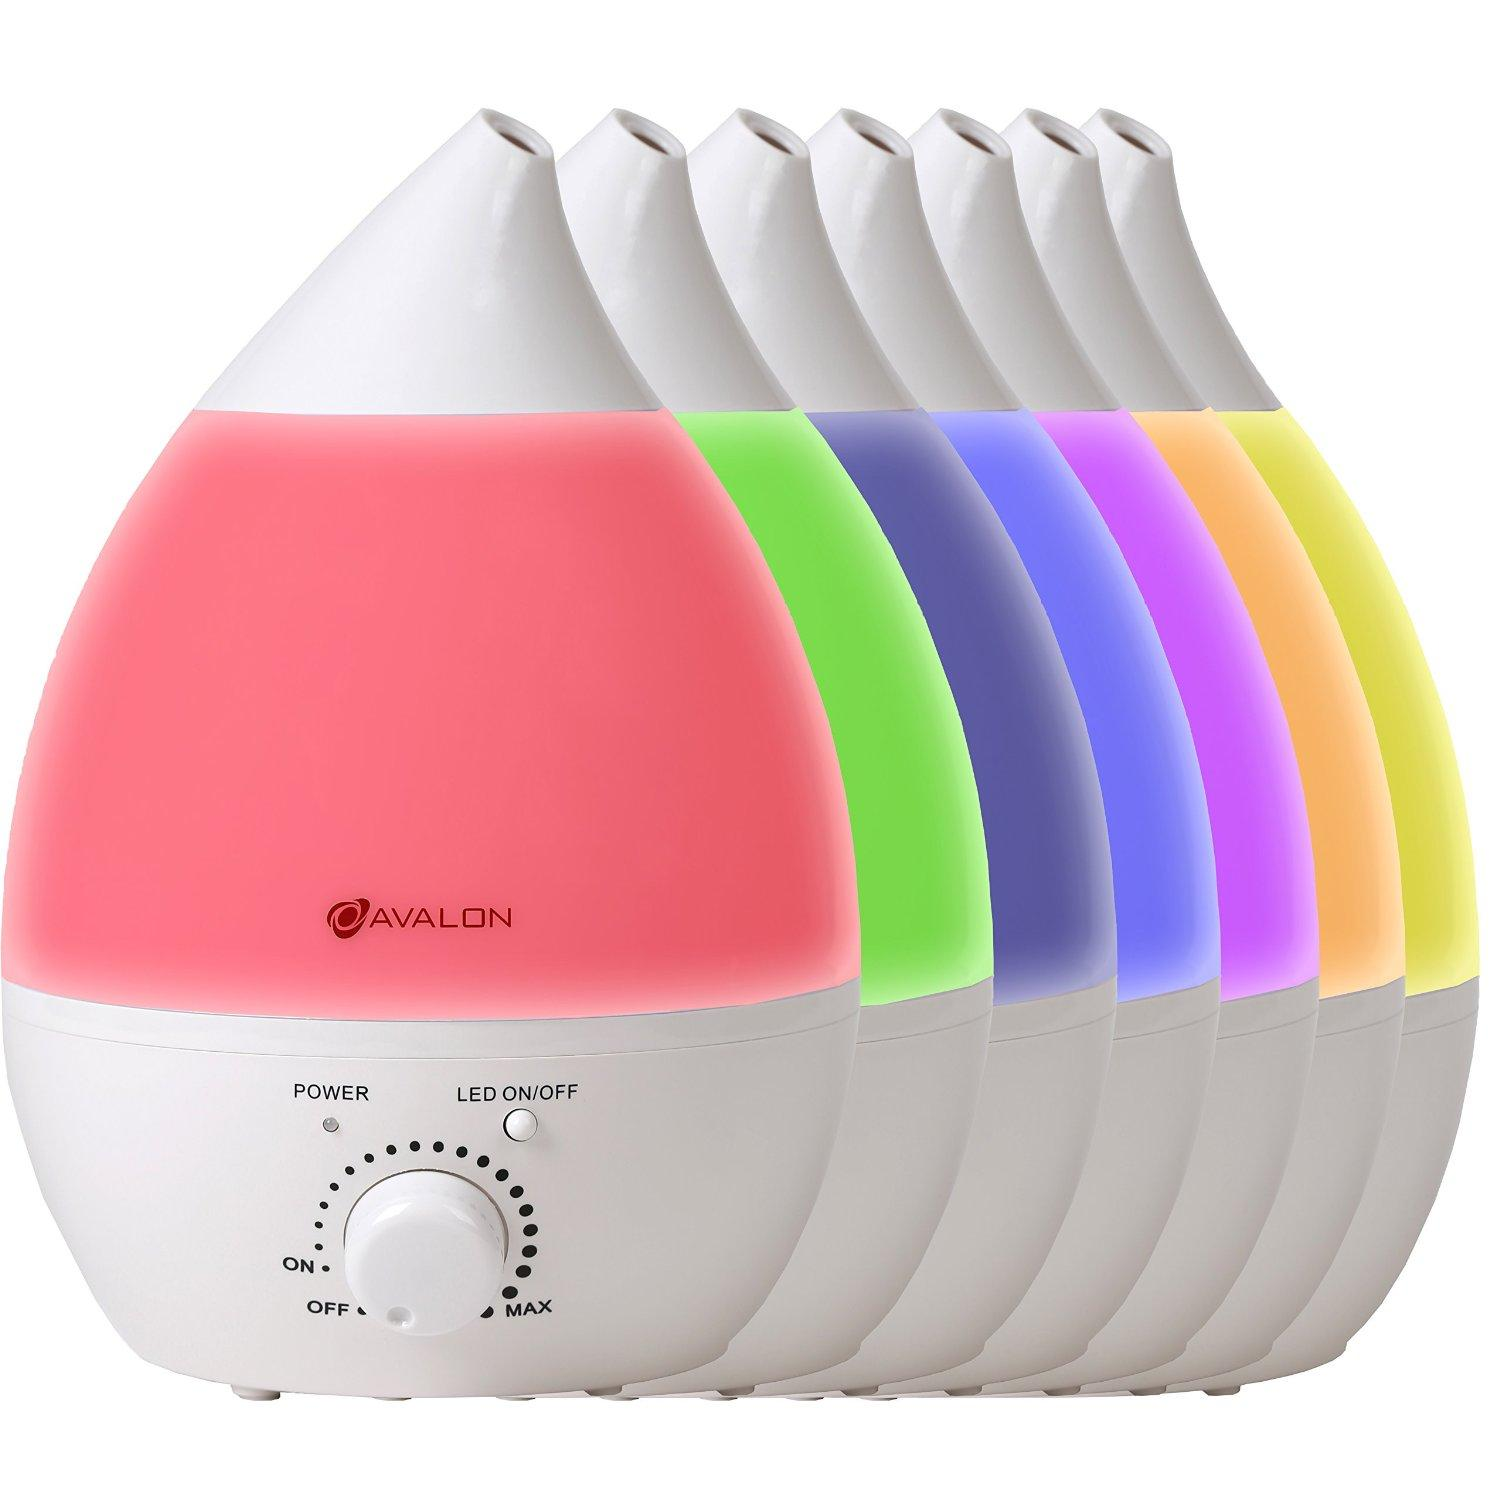 Avalon Premium Ultrasonic Cool Mist Humidifier with Filter, Aroma Oil Diffuser